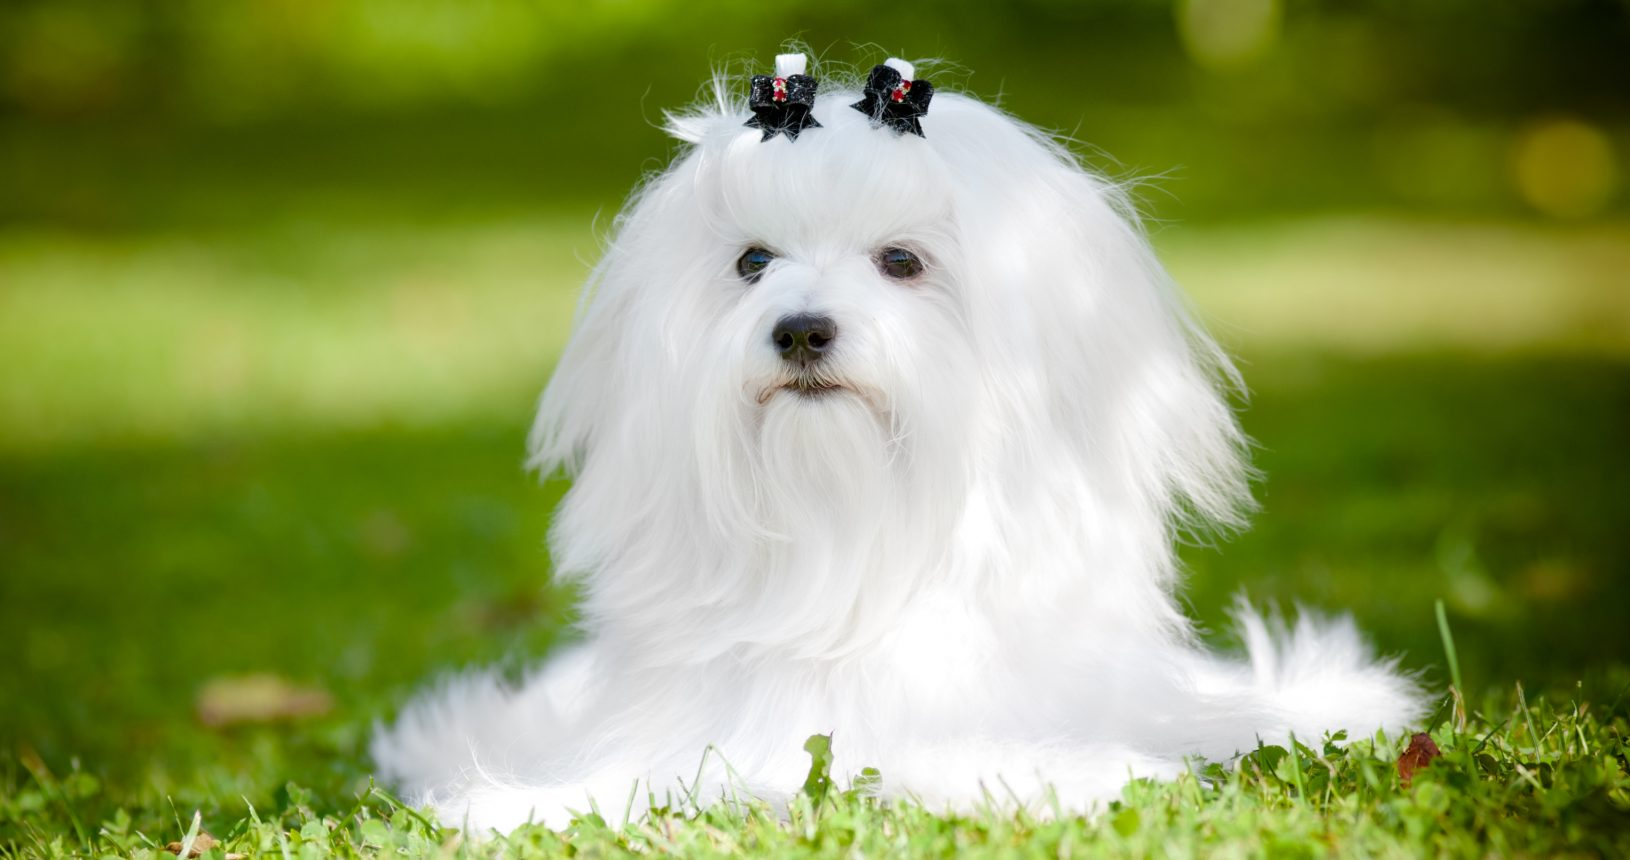 Maltese Puppies For Sale Puppies Sale In Singapore Petshop 700 Facebook Reviews